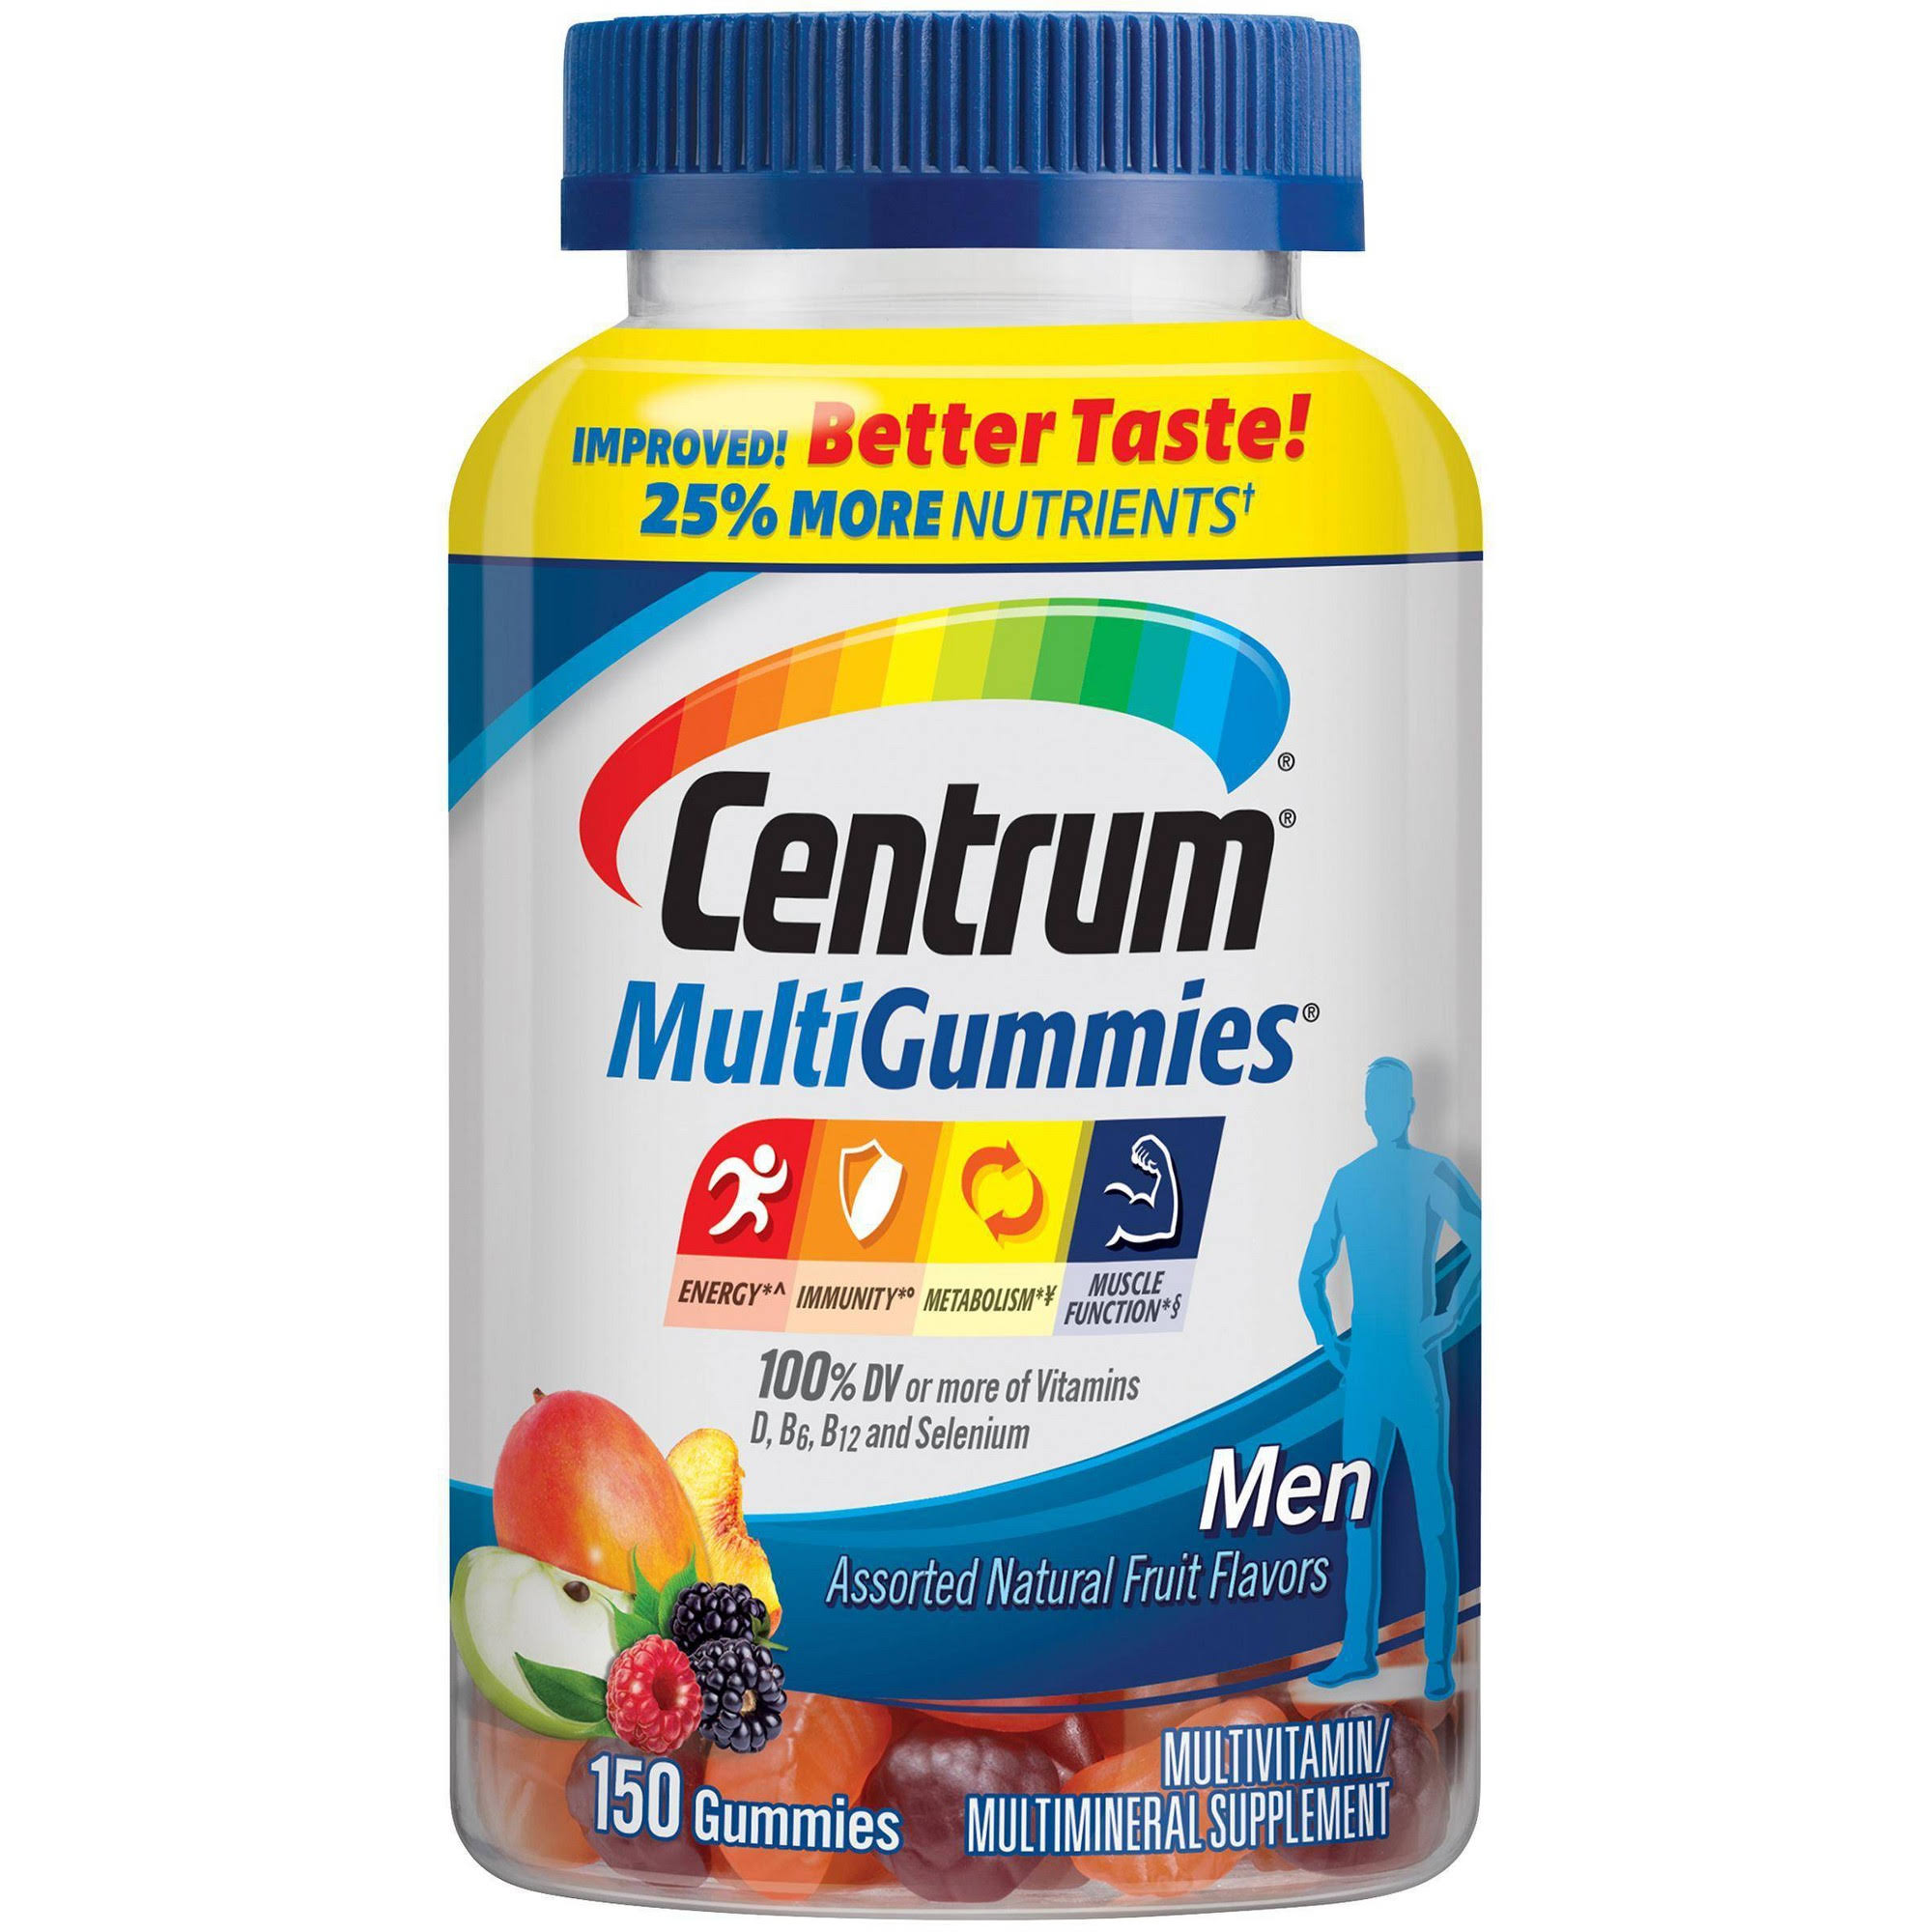 Centrum Multi Gummies, Men, Assorted Natural Fruit Flavor - 150 gummies